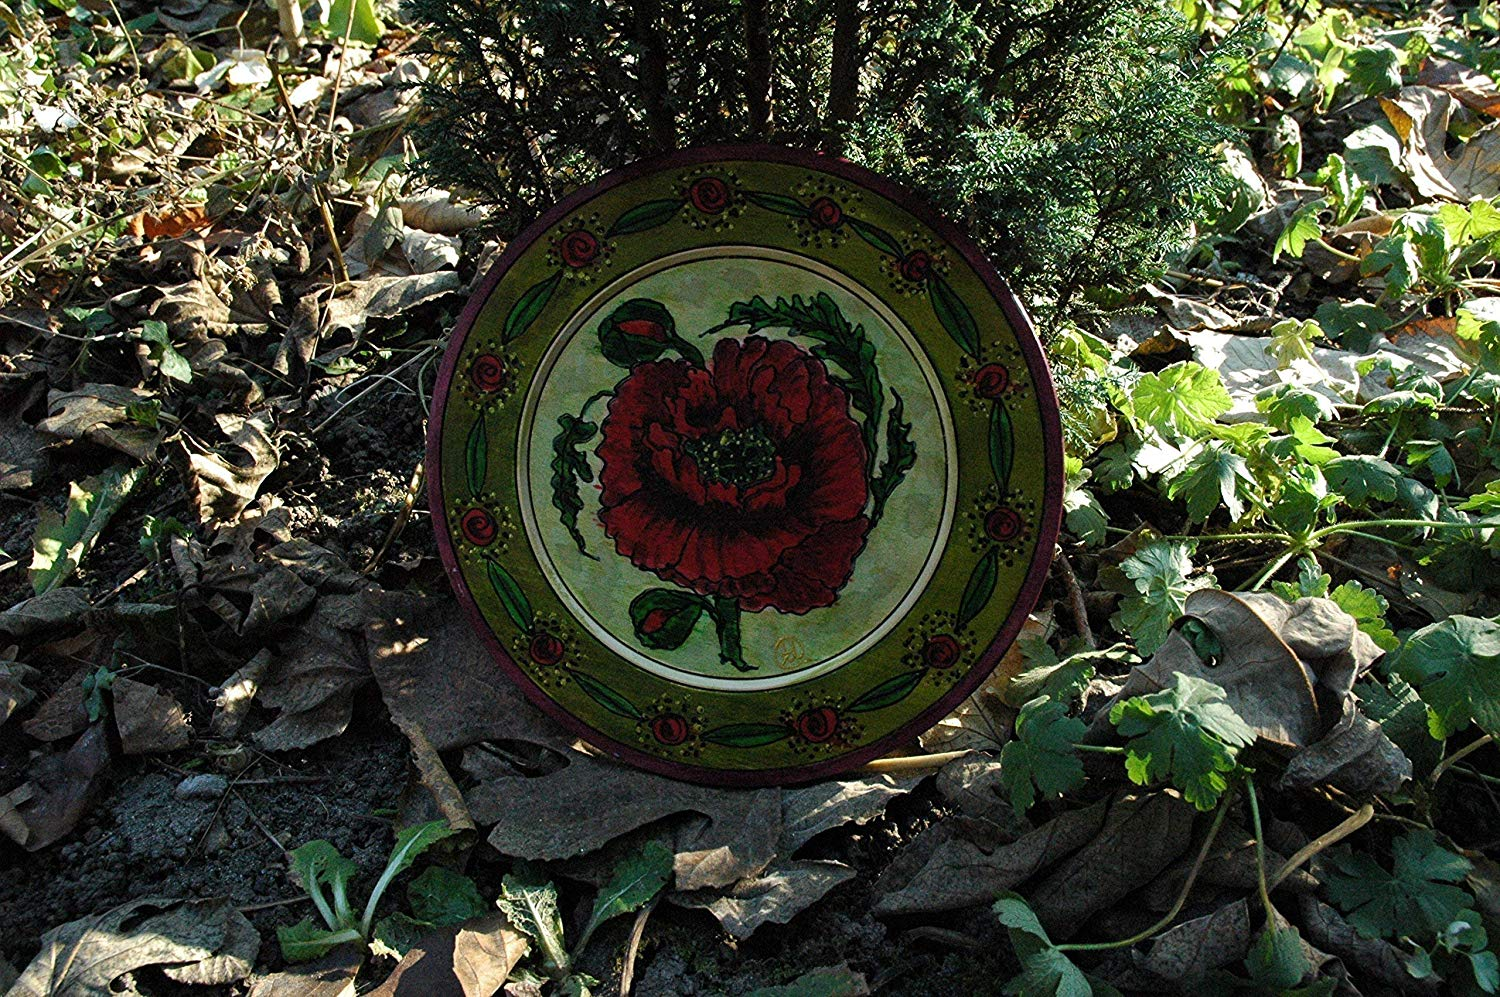 Sale!!!10% Off,Hand Painted Red Poppy on Wooden Plate, Wooden Souvenir Plate Poppy Flower, Wood Bowl, Handpainted Bowl Plate, Wall Hanging Plate, Floral Plates.